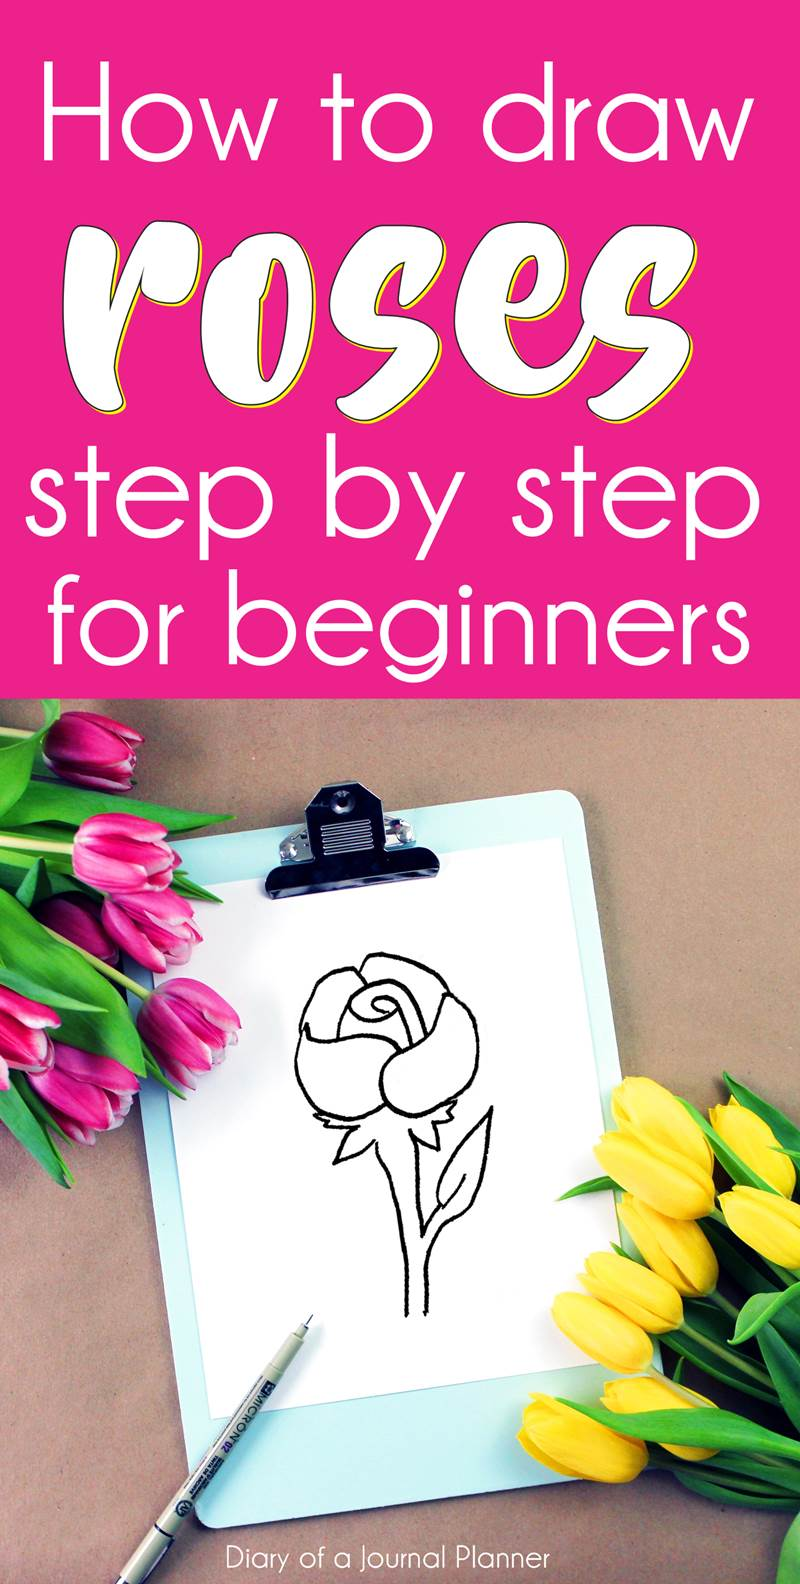 How to draw roses for beginners